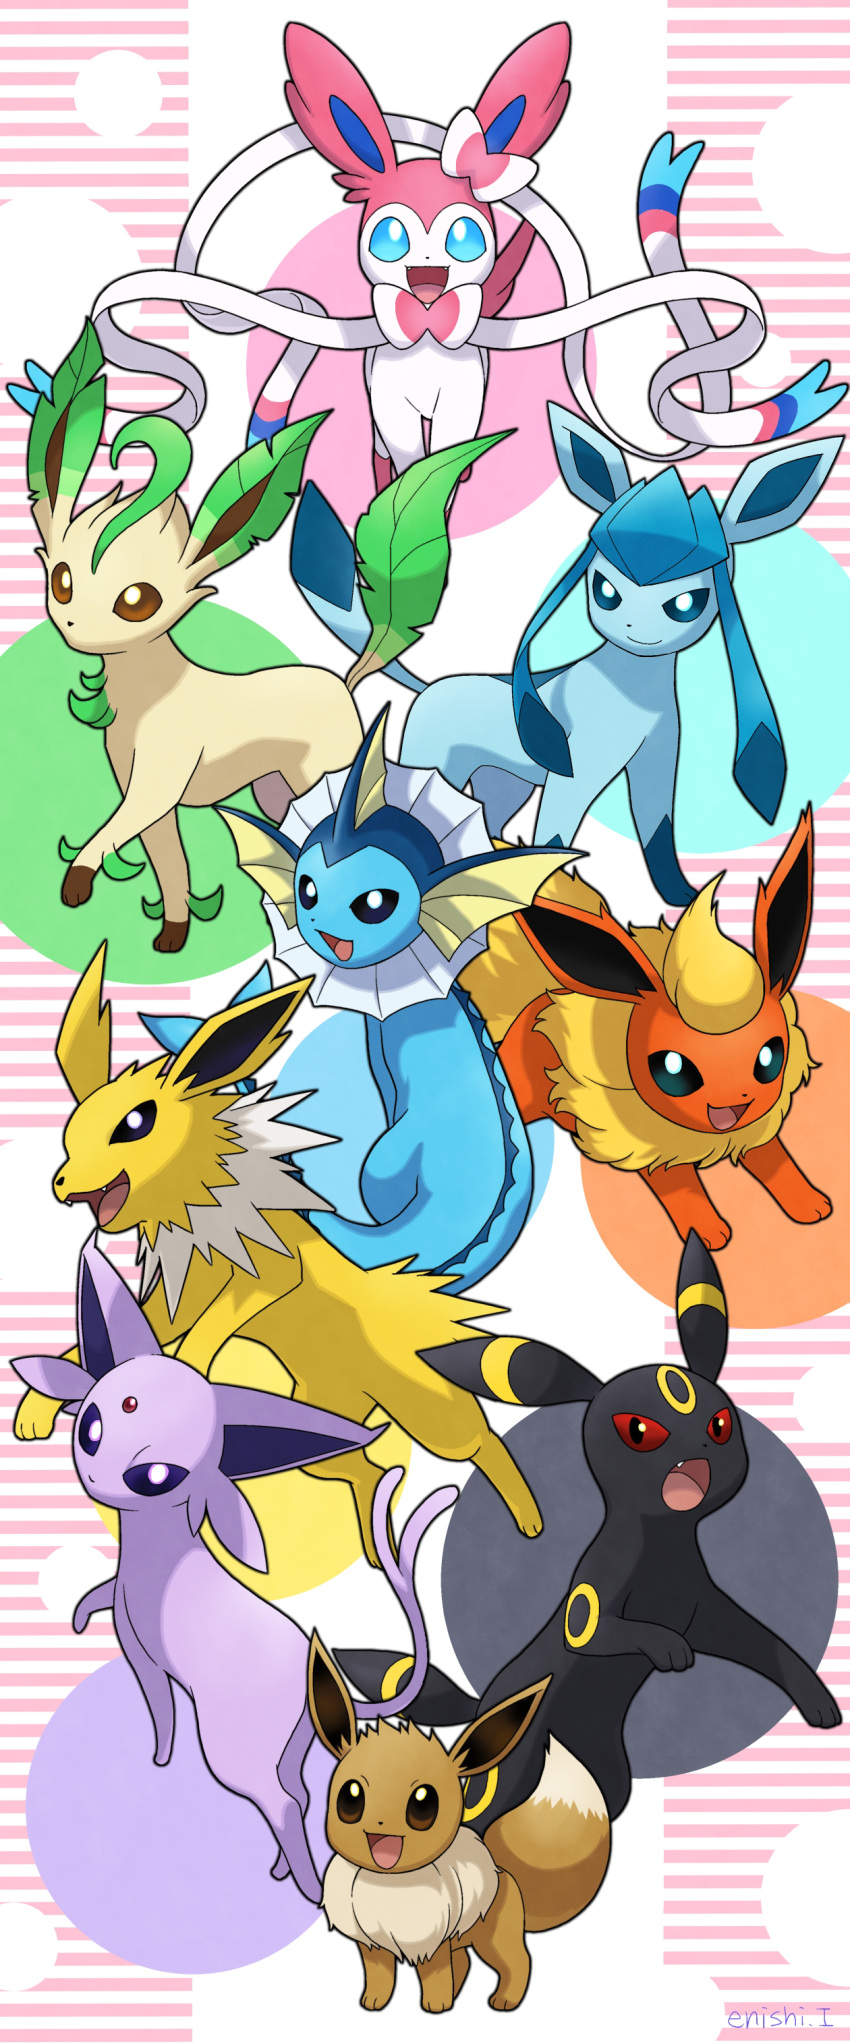 :d absurdres black_eyes blue_eyes brown_eyes closed_mouth commentary_request creature eevee enishi_(menkura-rin10) espeon fang flareon gen_1_pokemon gen_2_pokemon gen_4_pokemon gen_6_pokemon glaceon highres jolteon leafeon looking_at_viewer no_humans open_mouth pokemon pokemon_(creature) red_eyes simple_background smile striped striped_background sylveon umbreon vaporeon violet_eyes white_background